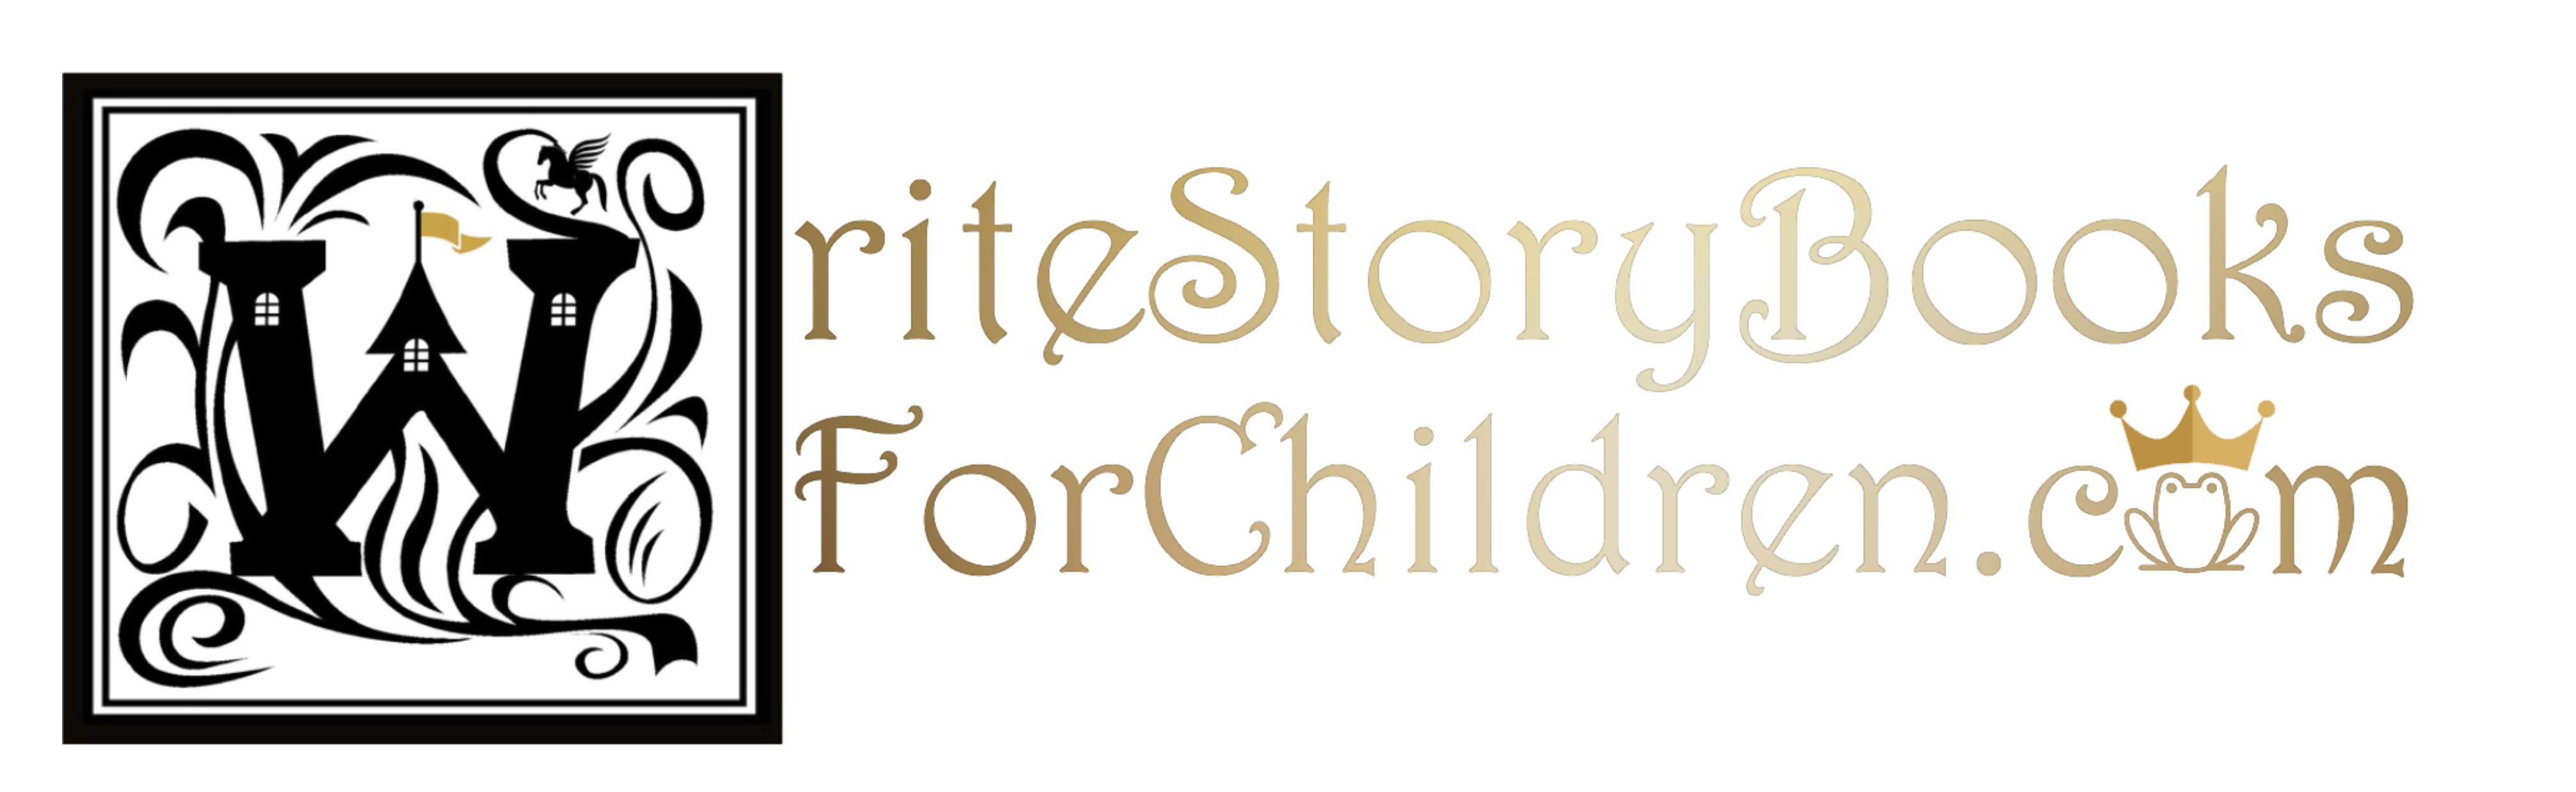 Write Stories For Children, Children's Story Writing Course